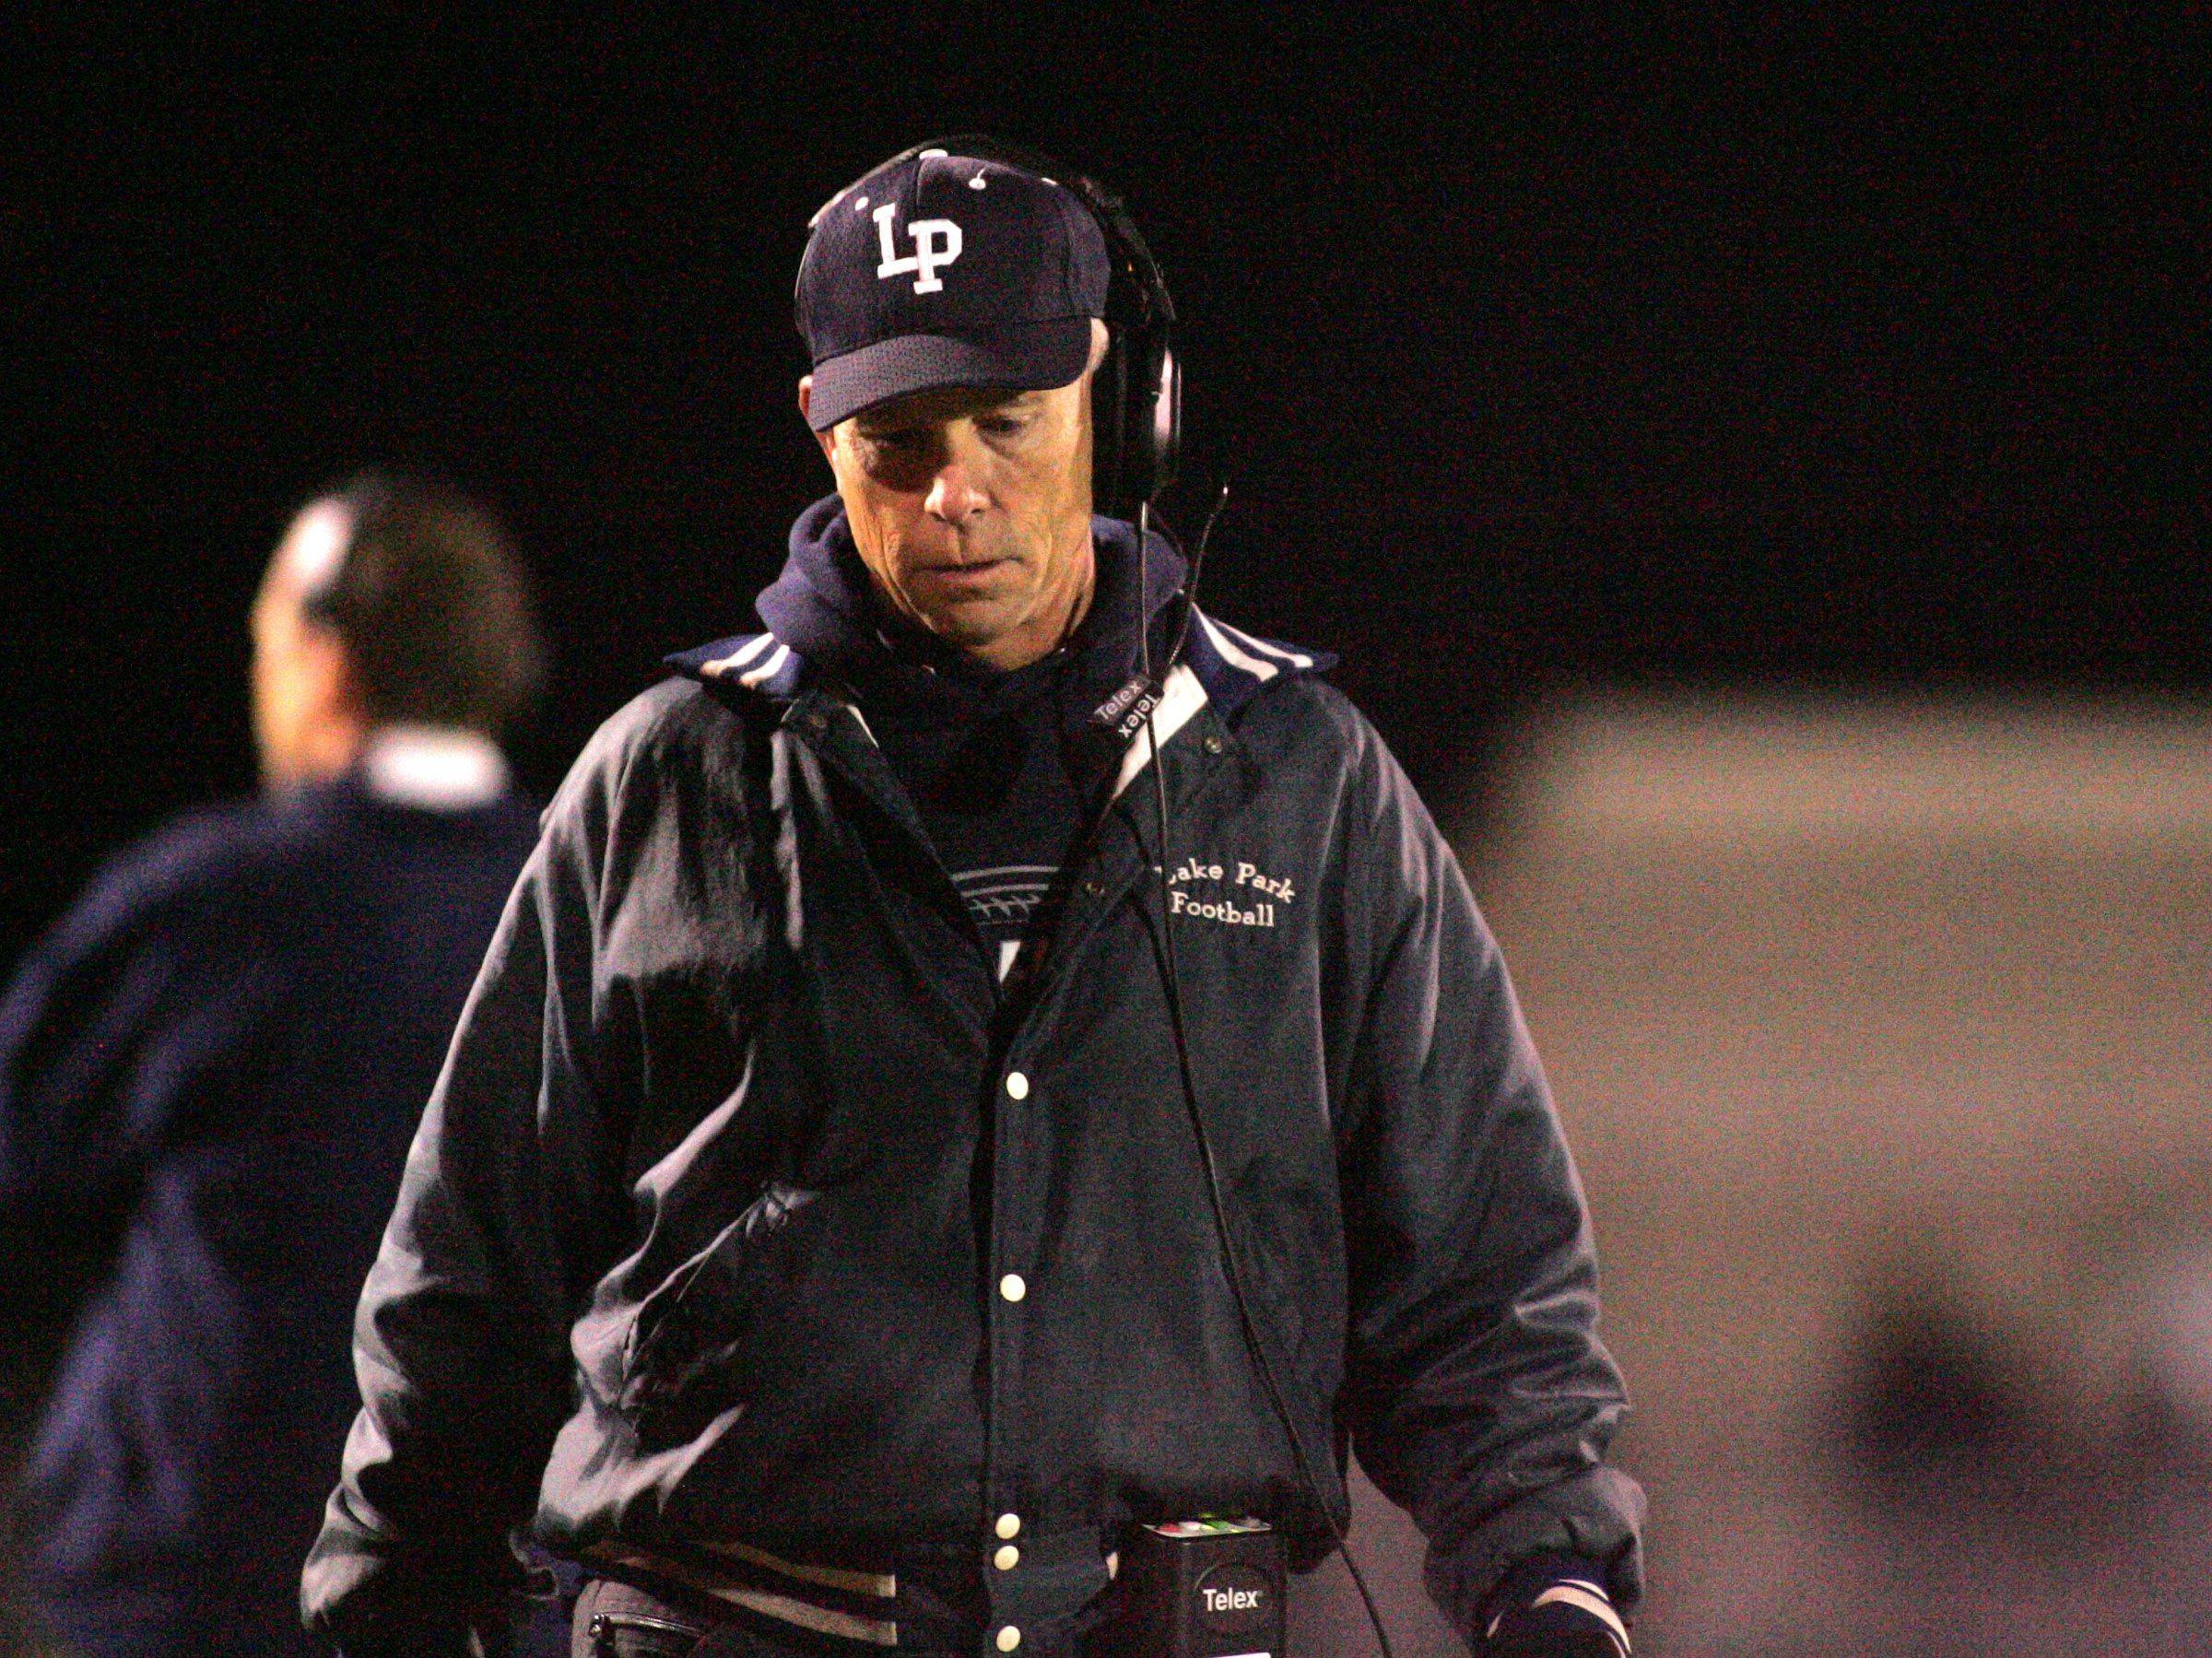 WEEK 9- Lake Park coach Andy Livingston .